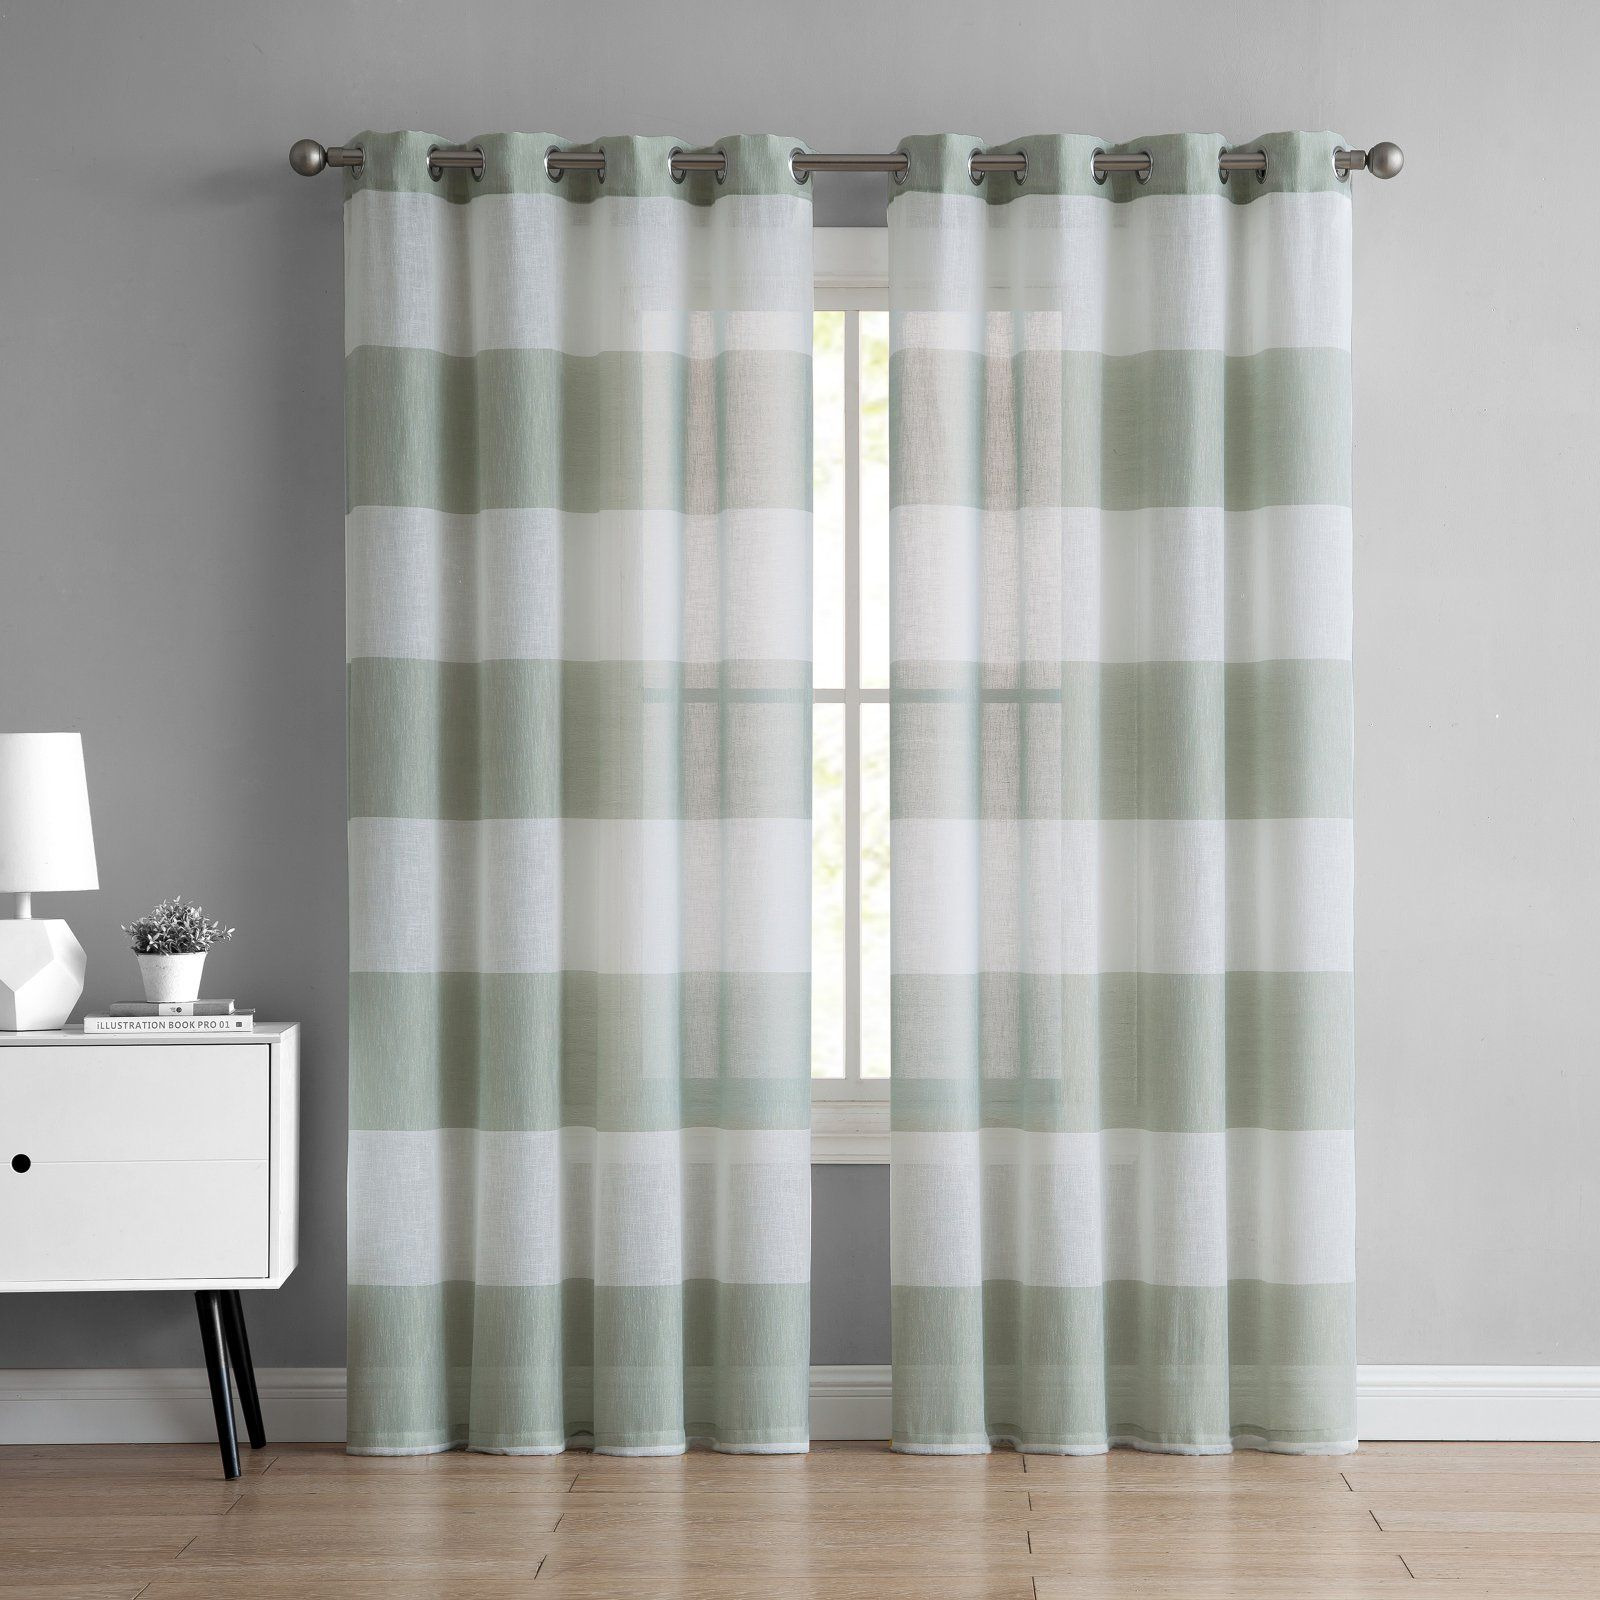 Mainstays Austin Semi Sheer Stripe Grommet Window Curtain Panel